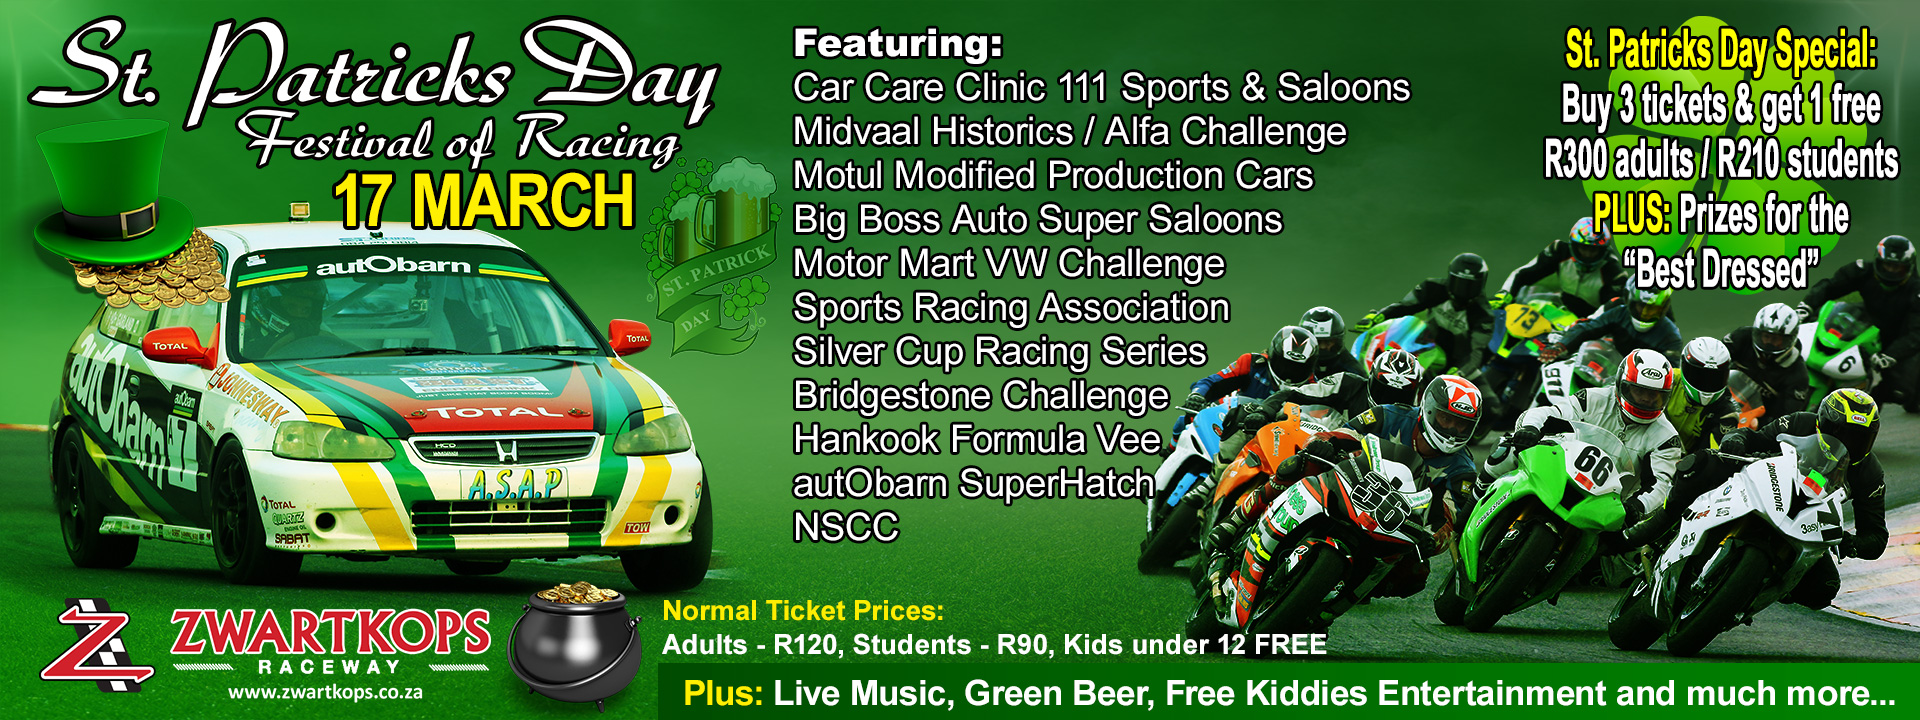 St. Patrick's Day Festival of Racing - 17 March 2018